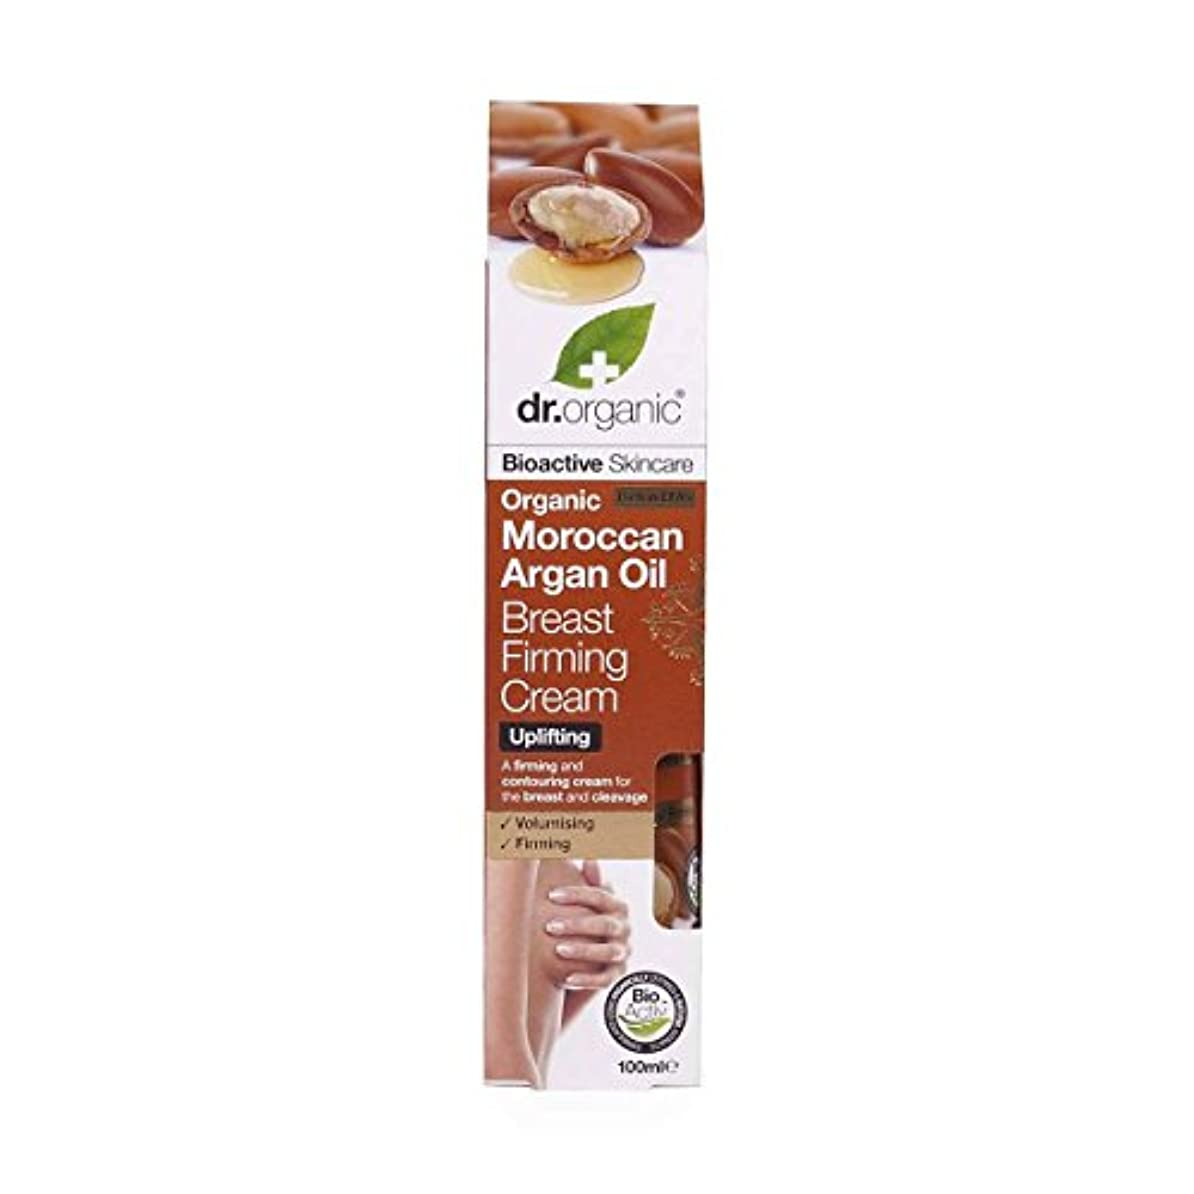 関係スーツケーススリットDr. Organic Organic Moroccan Argan Oil Breast Firming Cream 100ml [並行輸入品]